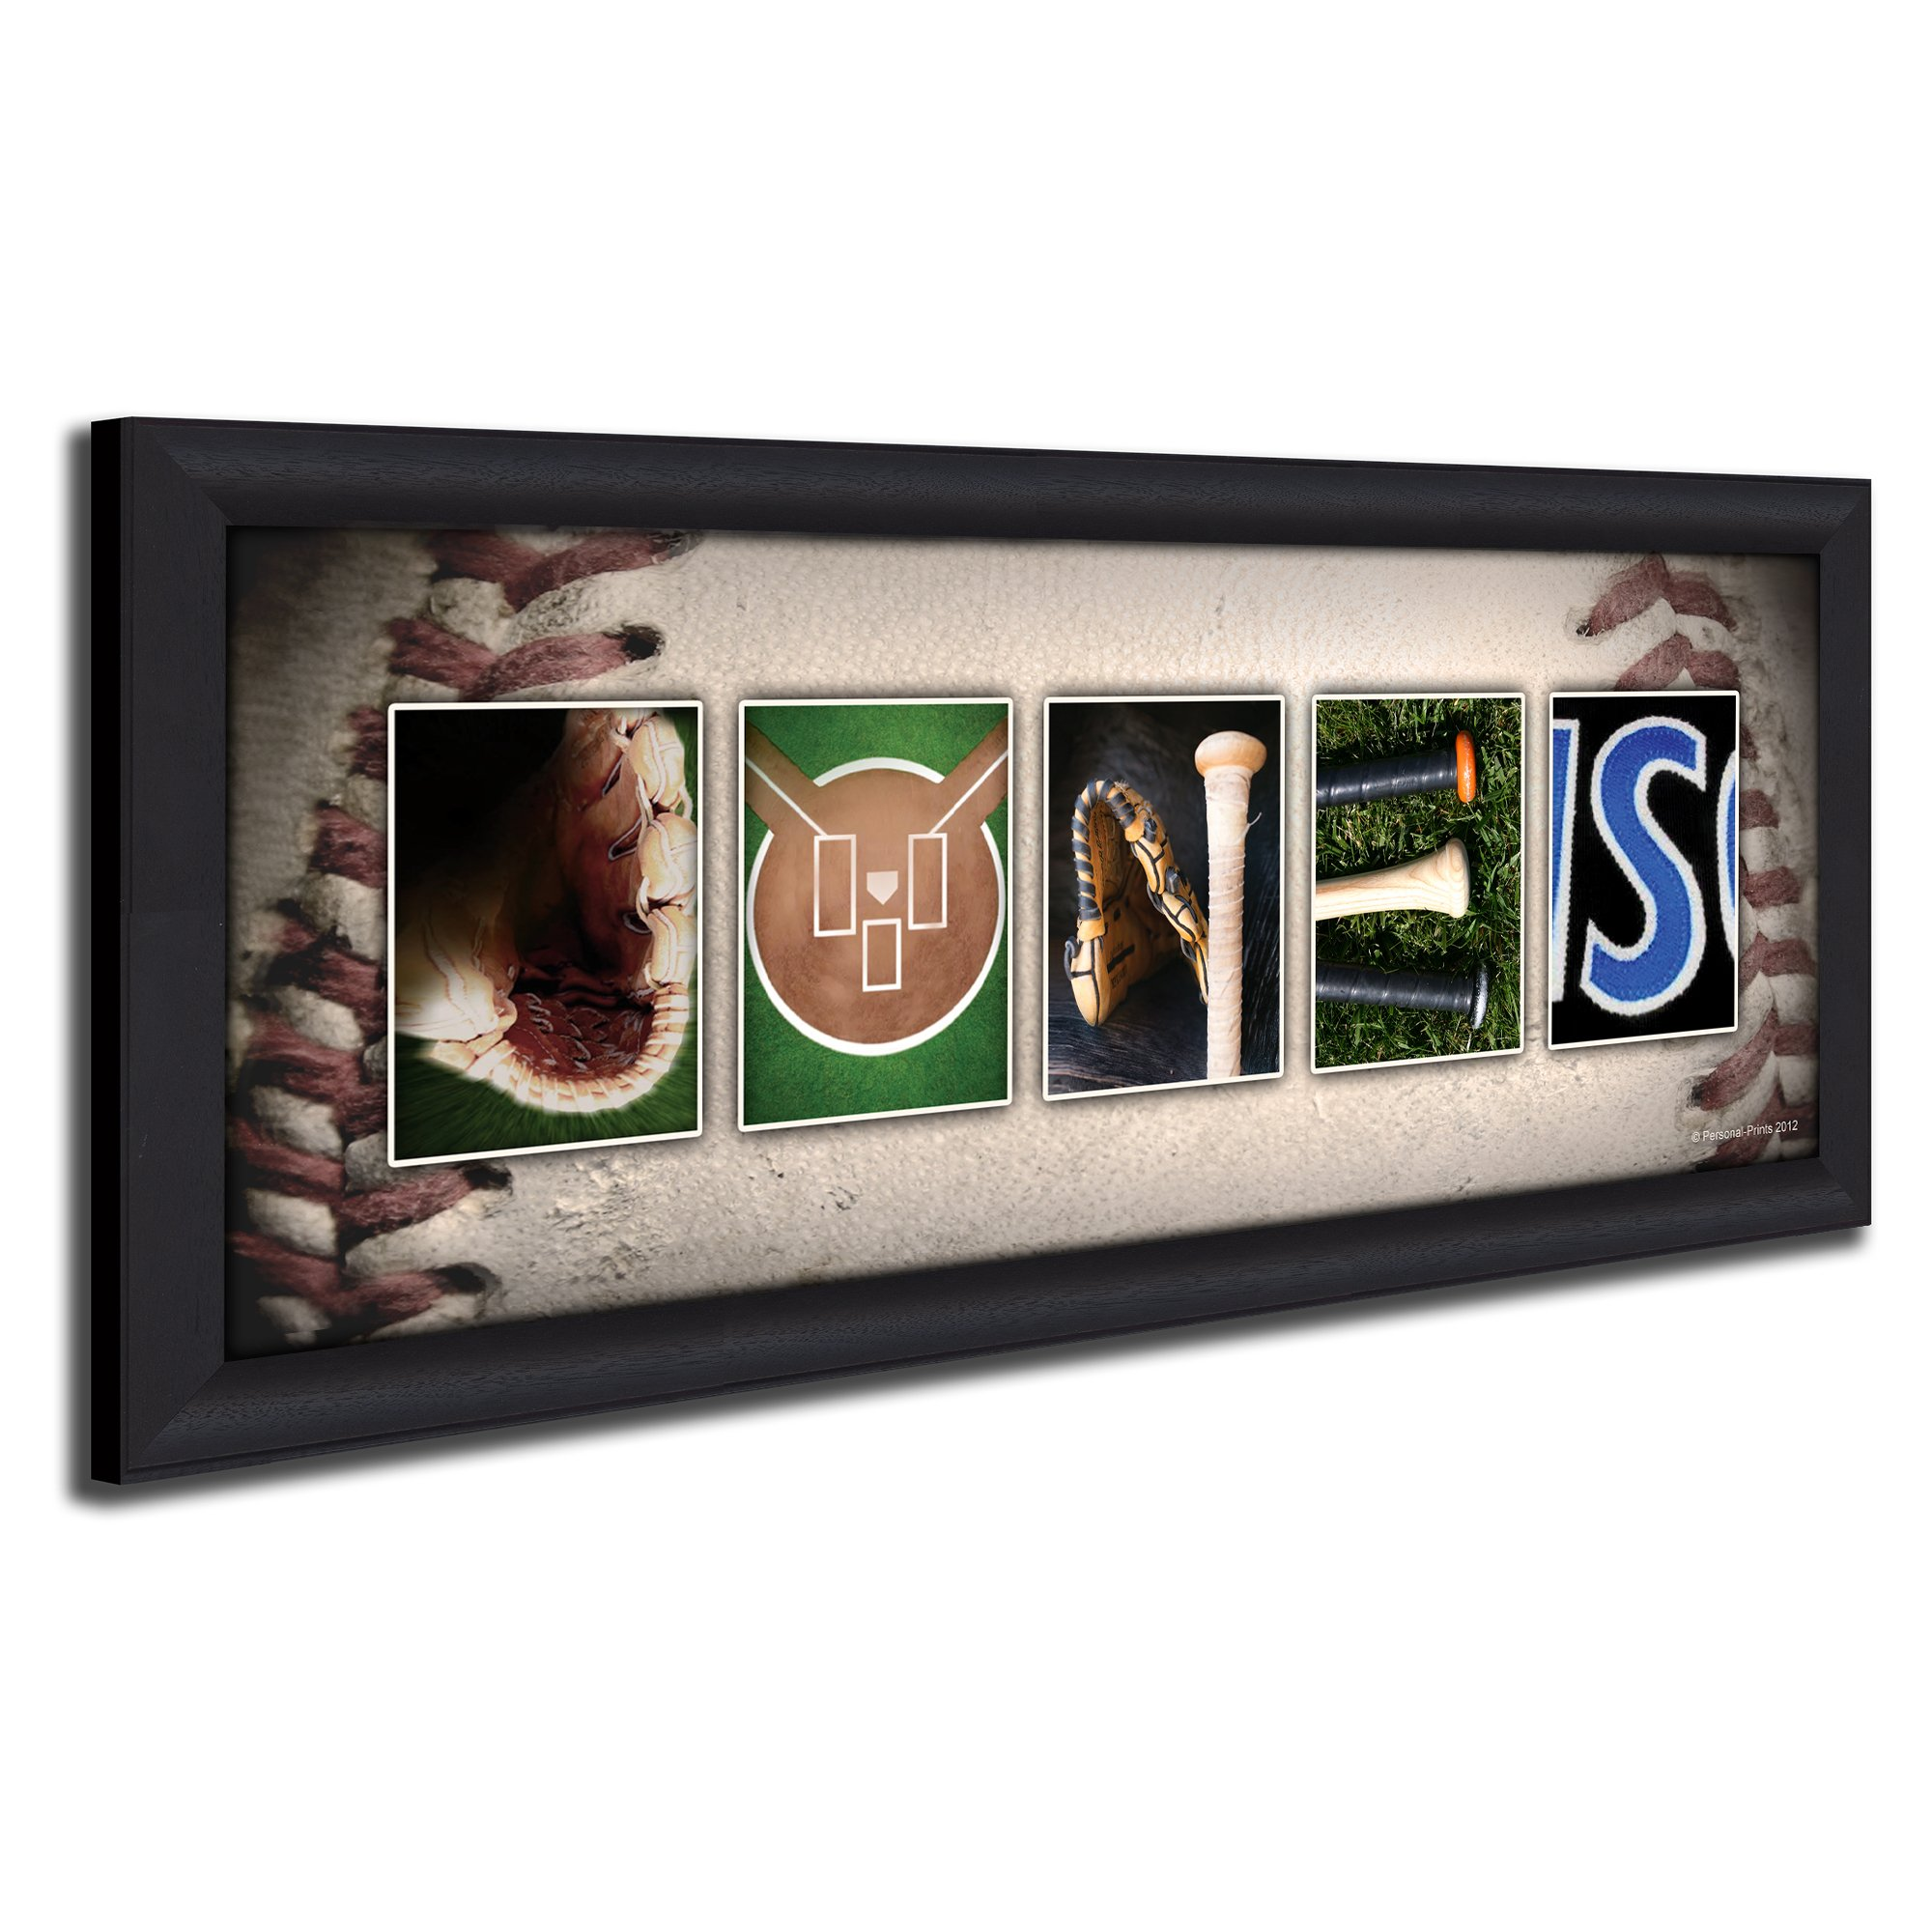 Personal Prints Framed Canvas - Personalized Baseball Name Art Print for man cave, boys room, or office!